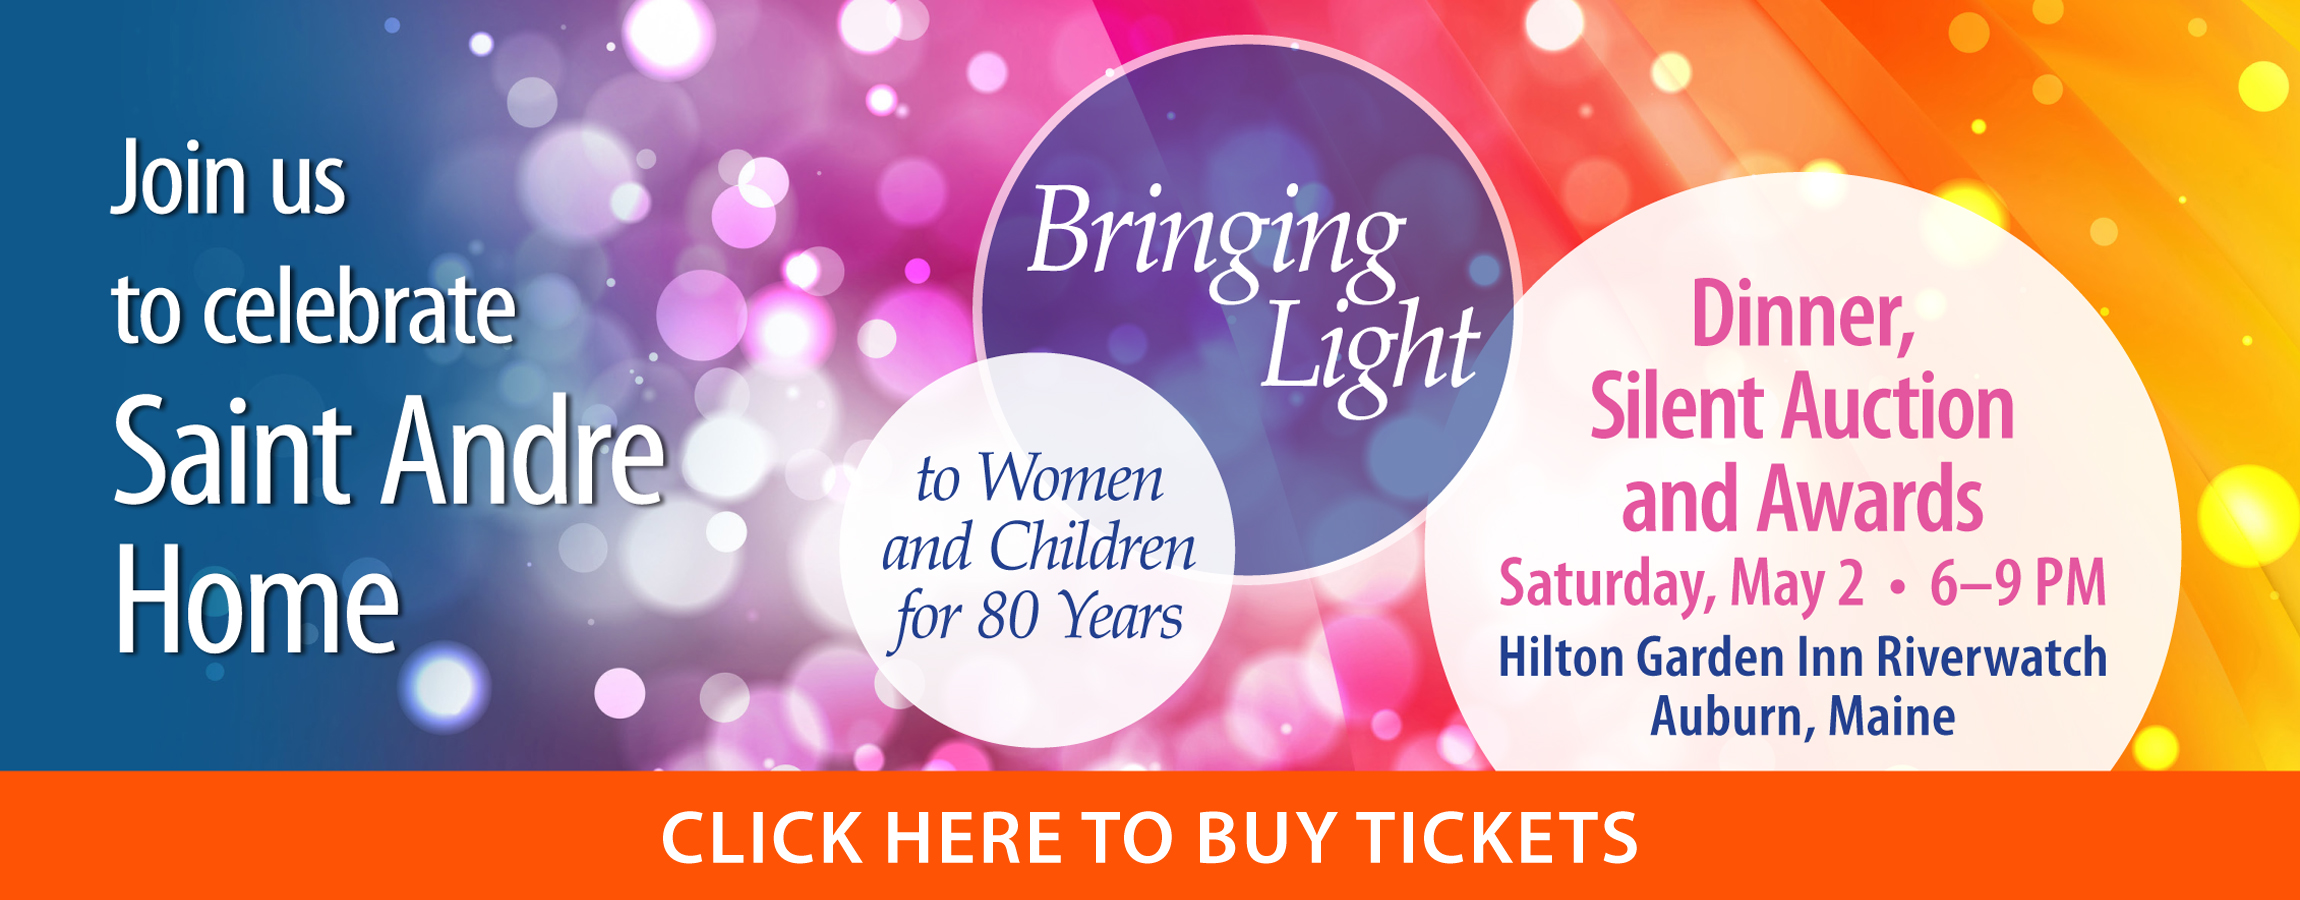 Dinner, Silent Auction, and Awards. Click Here to Buy Tickets.